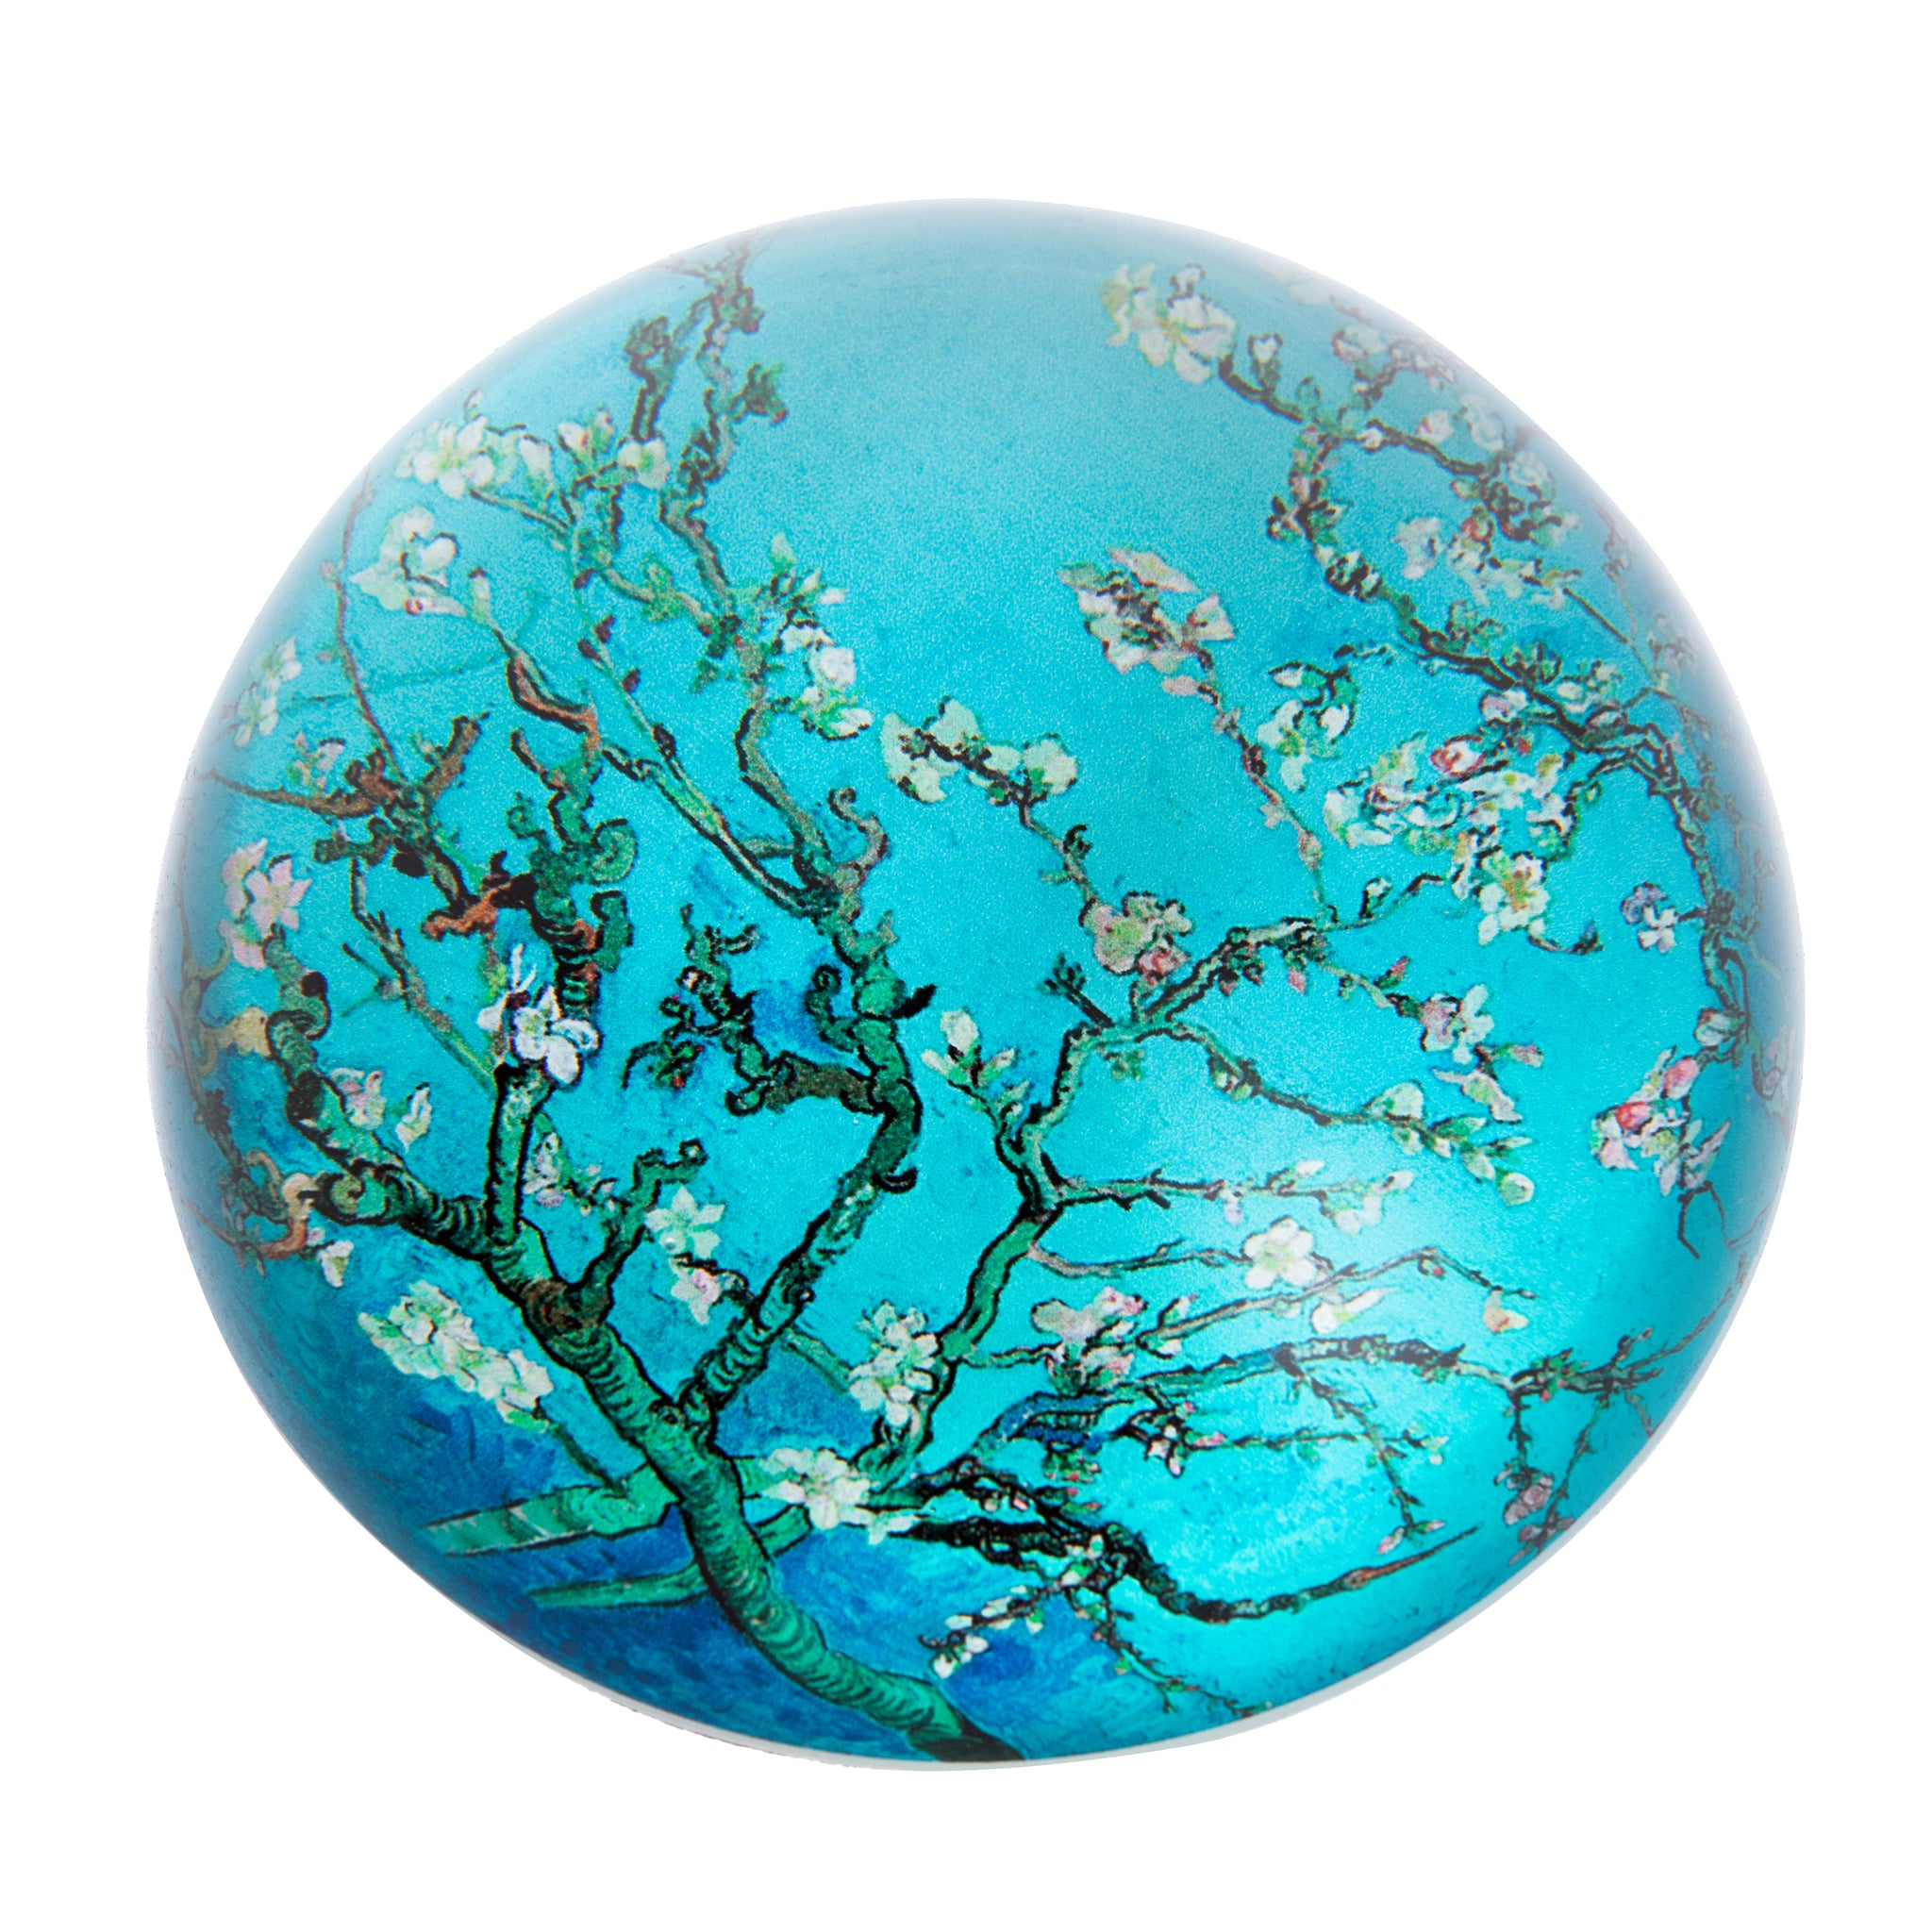 Van Gogh - Almond Blossom Paperweight